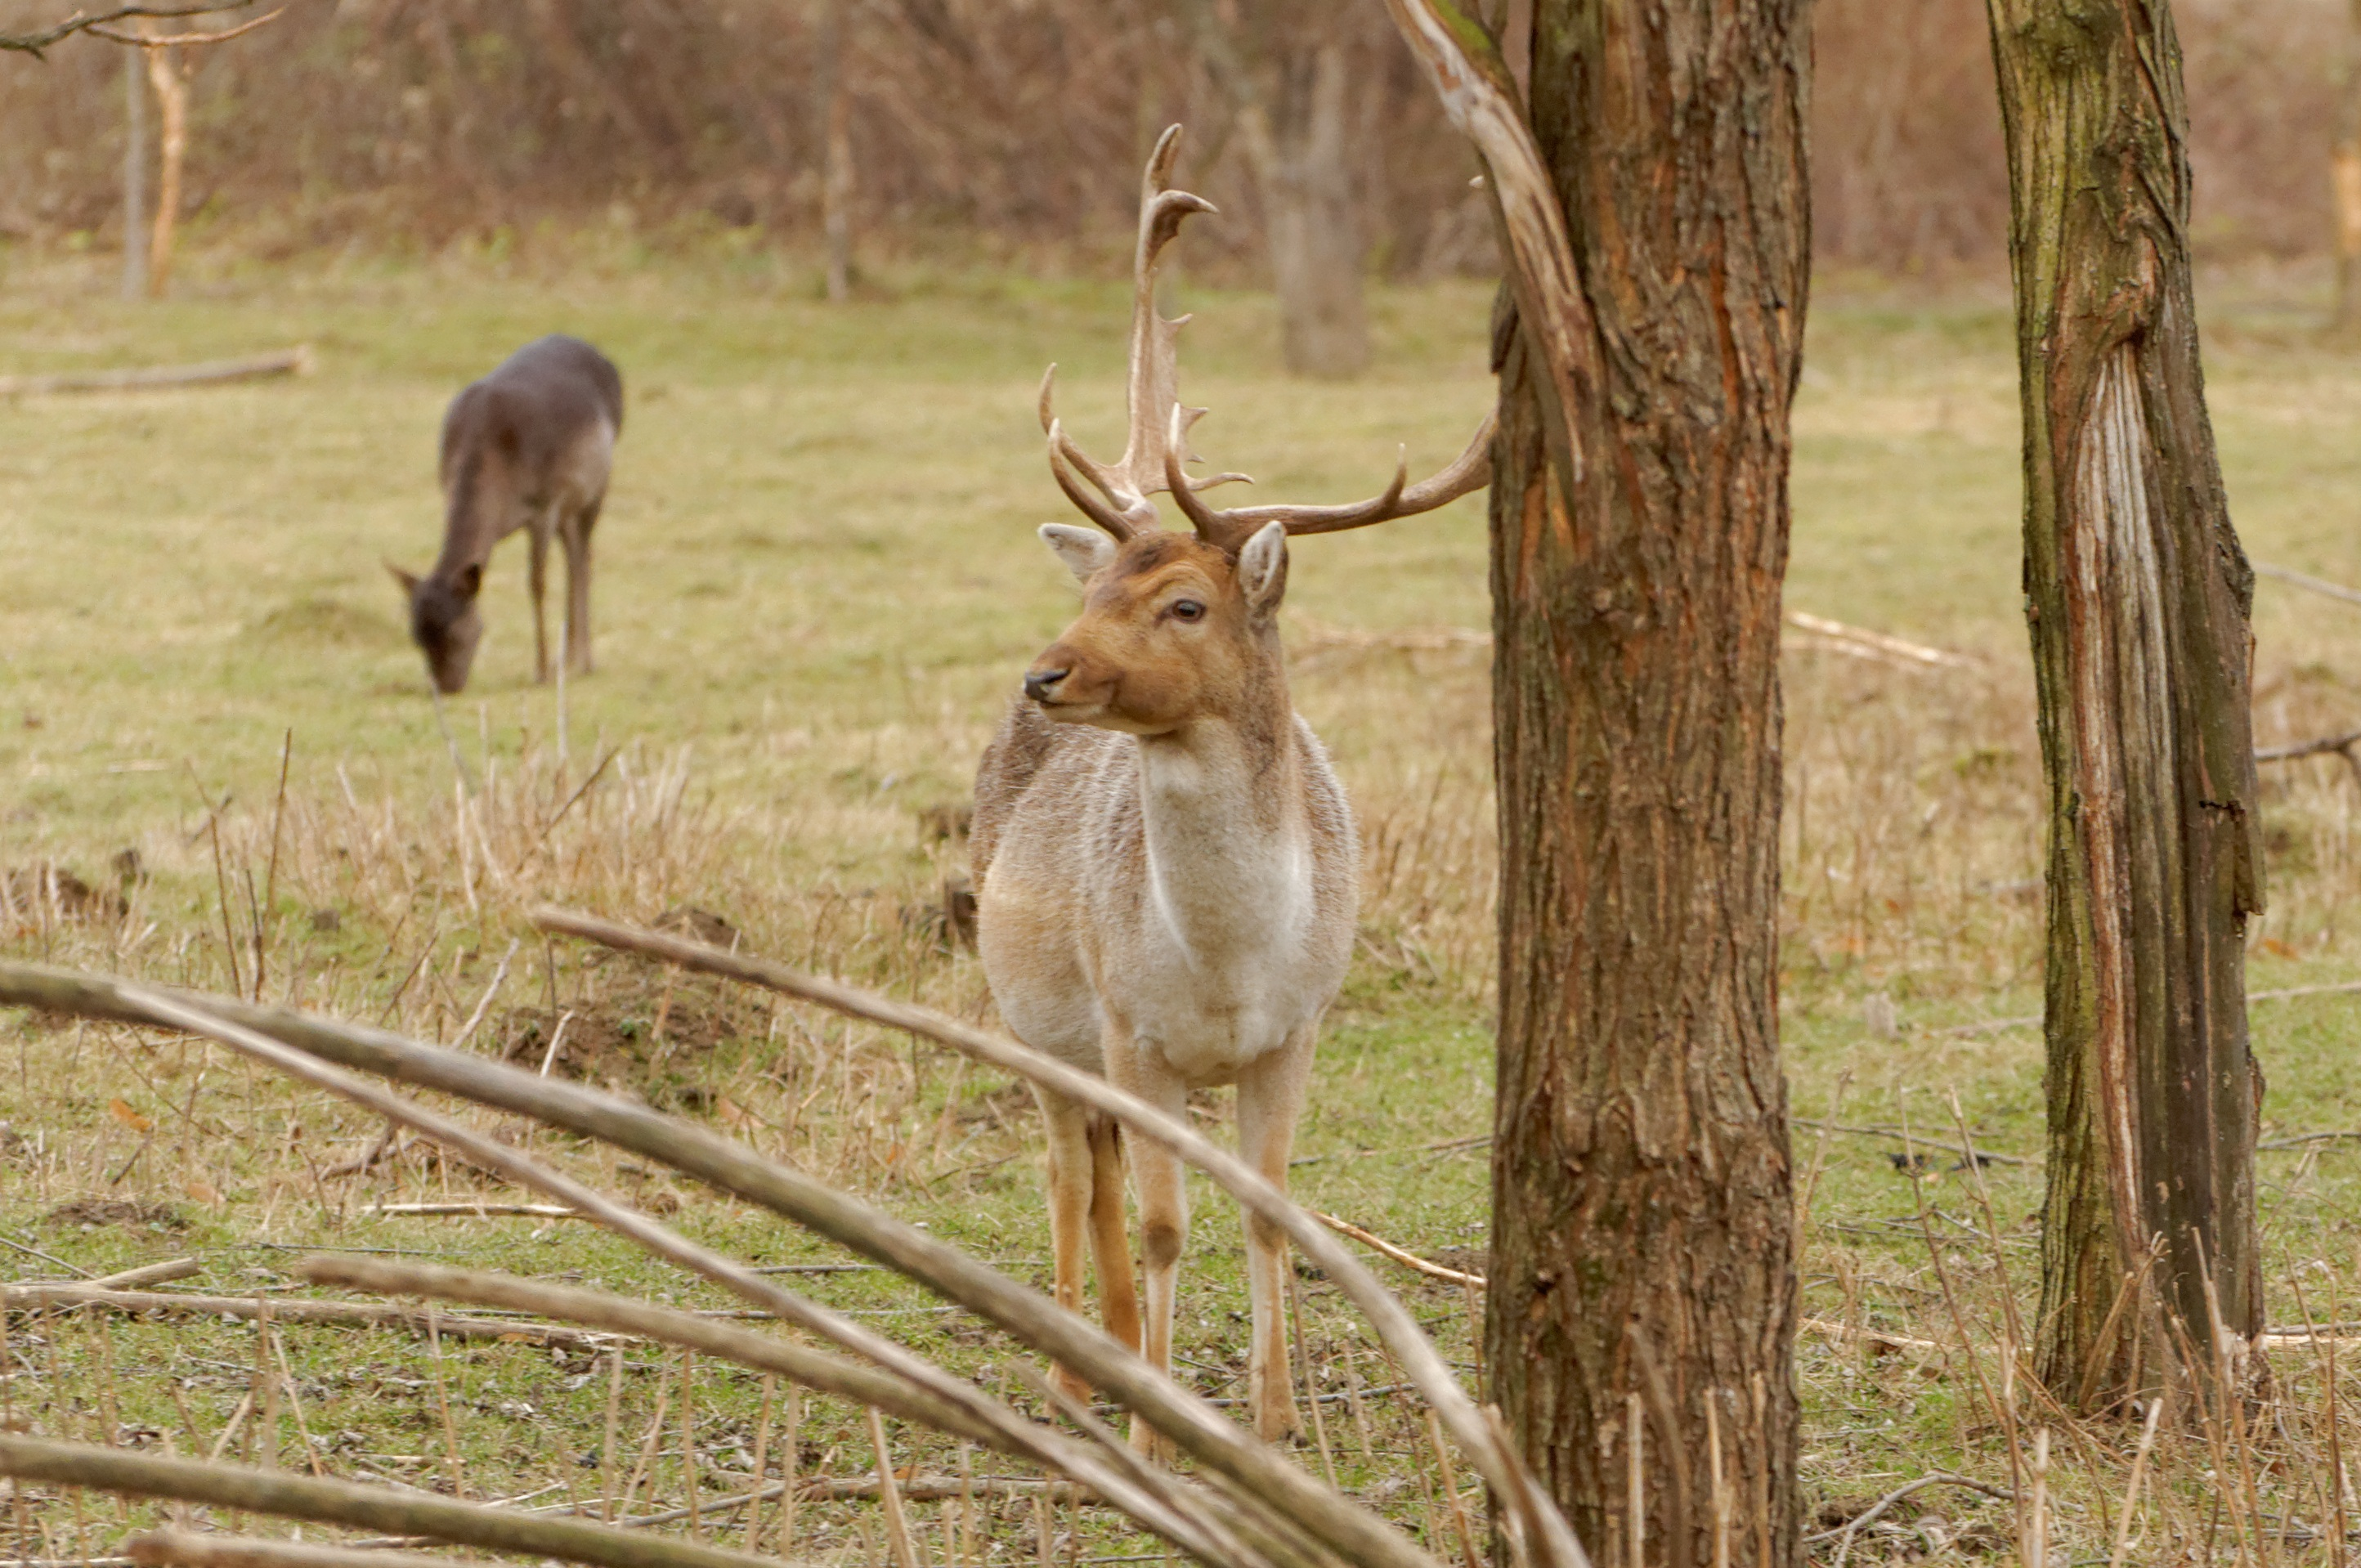 153114 download wallpaper Animals, Deers, Horns, Trees screensavers and pictures for free